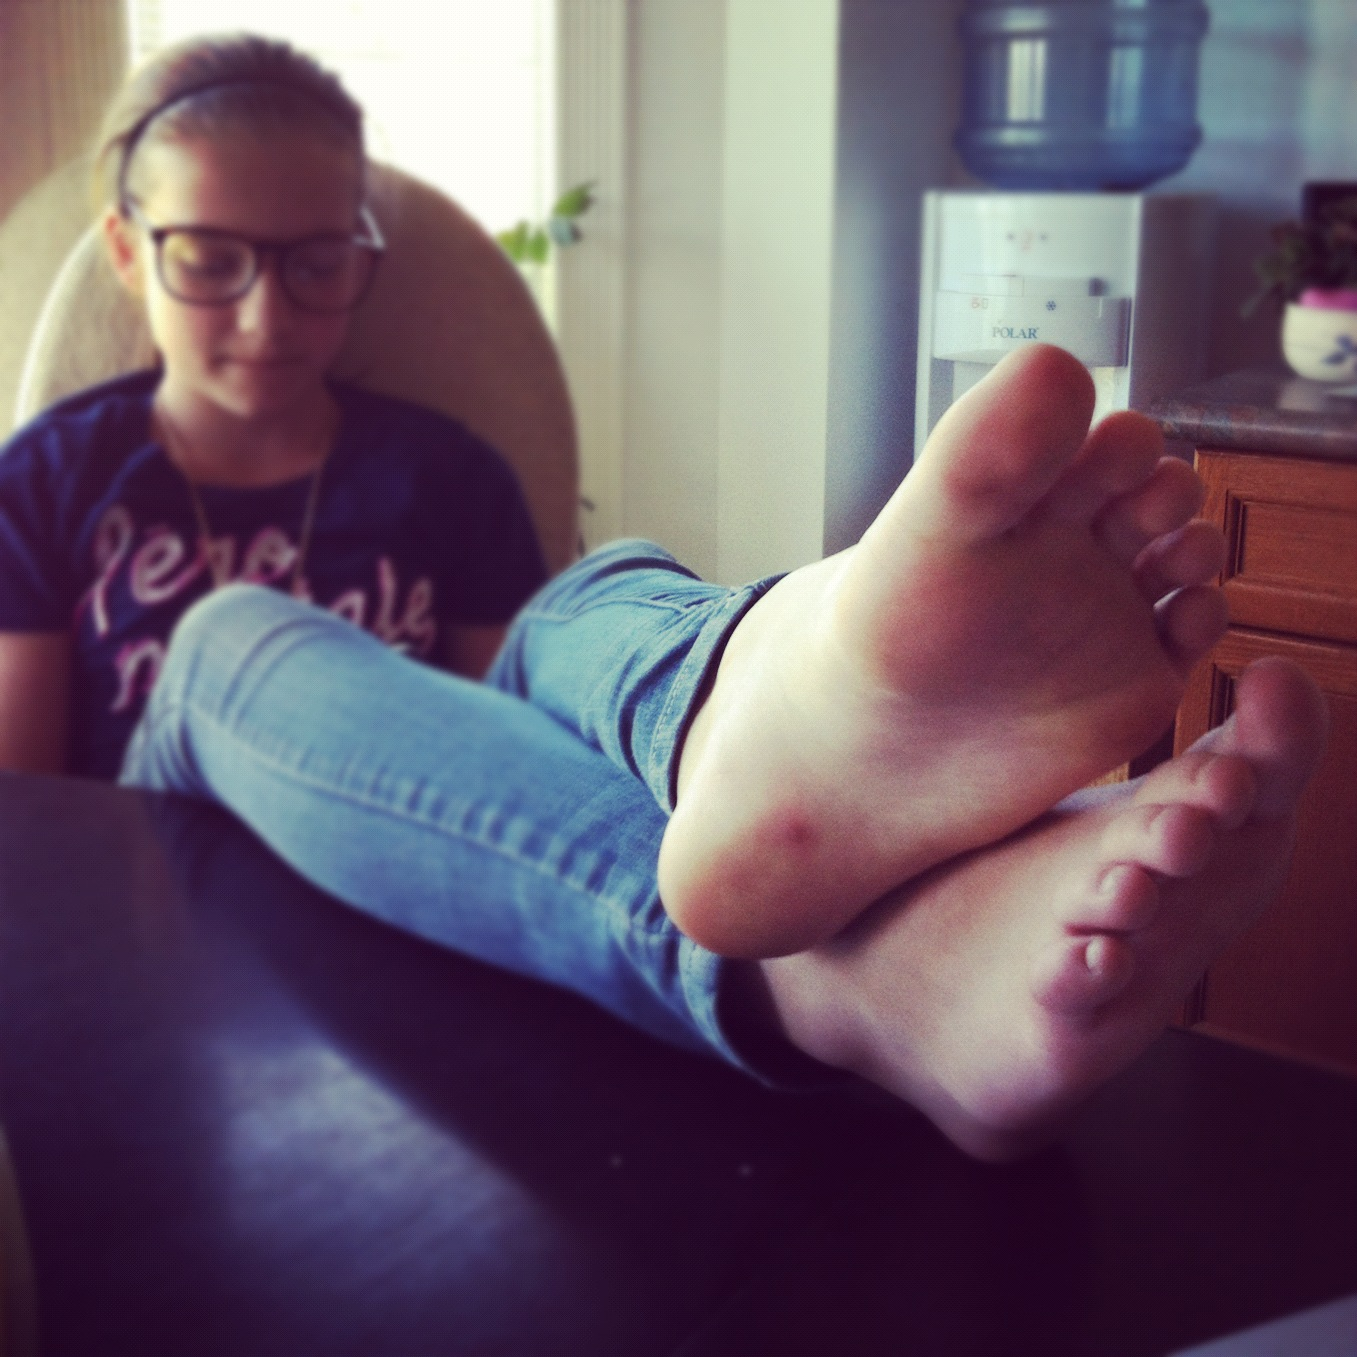 Phrase Absolutely young girl model feet